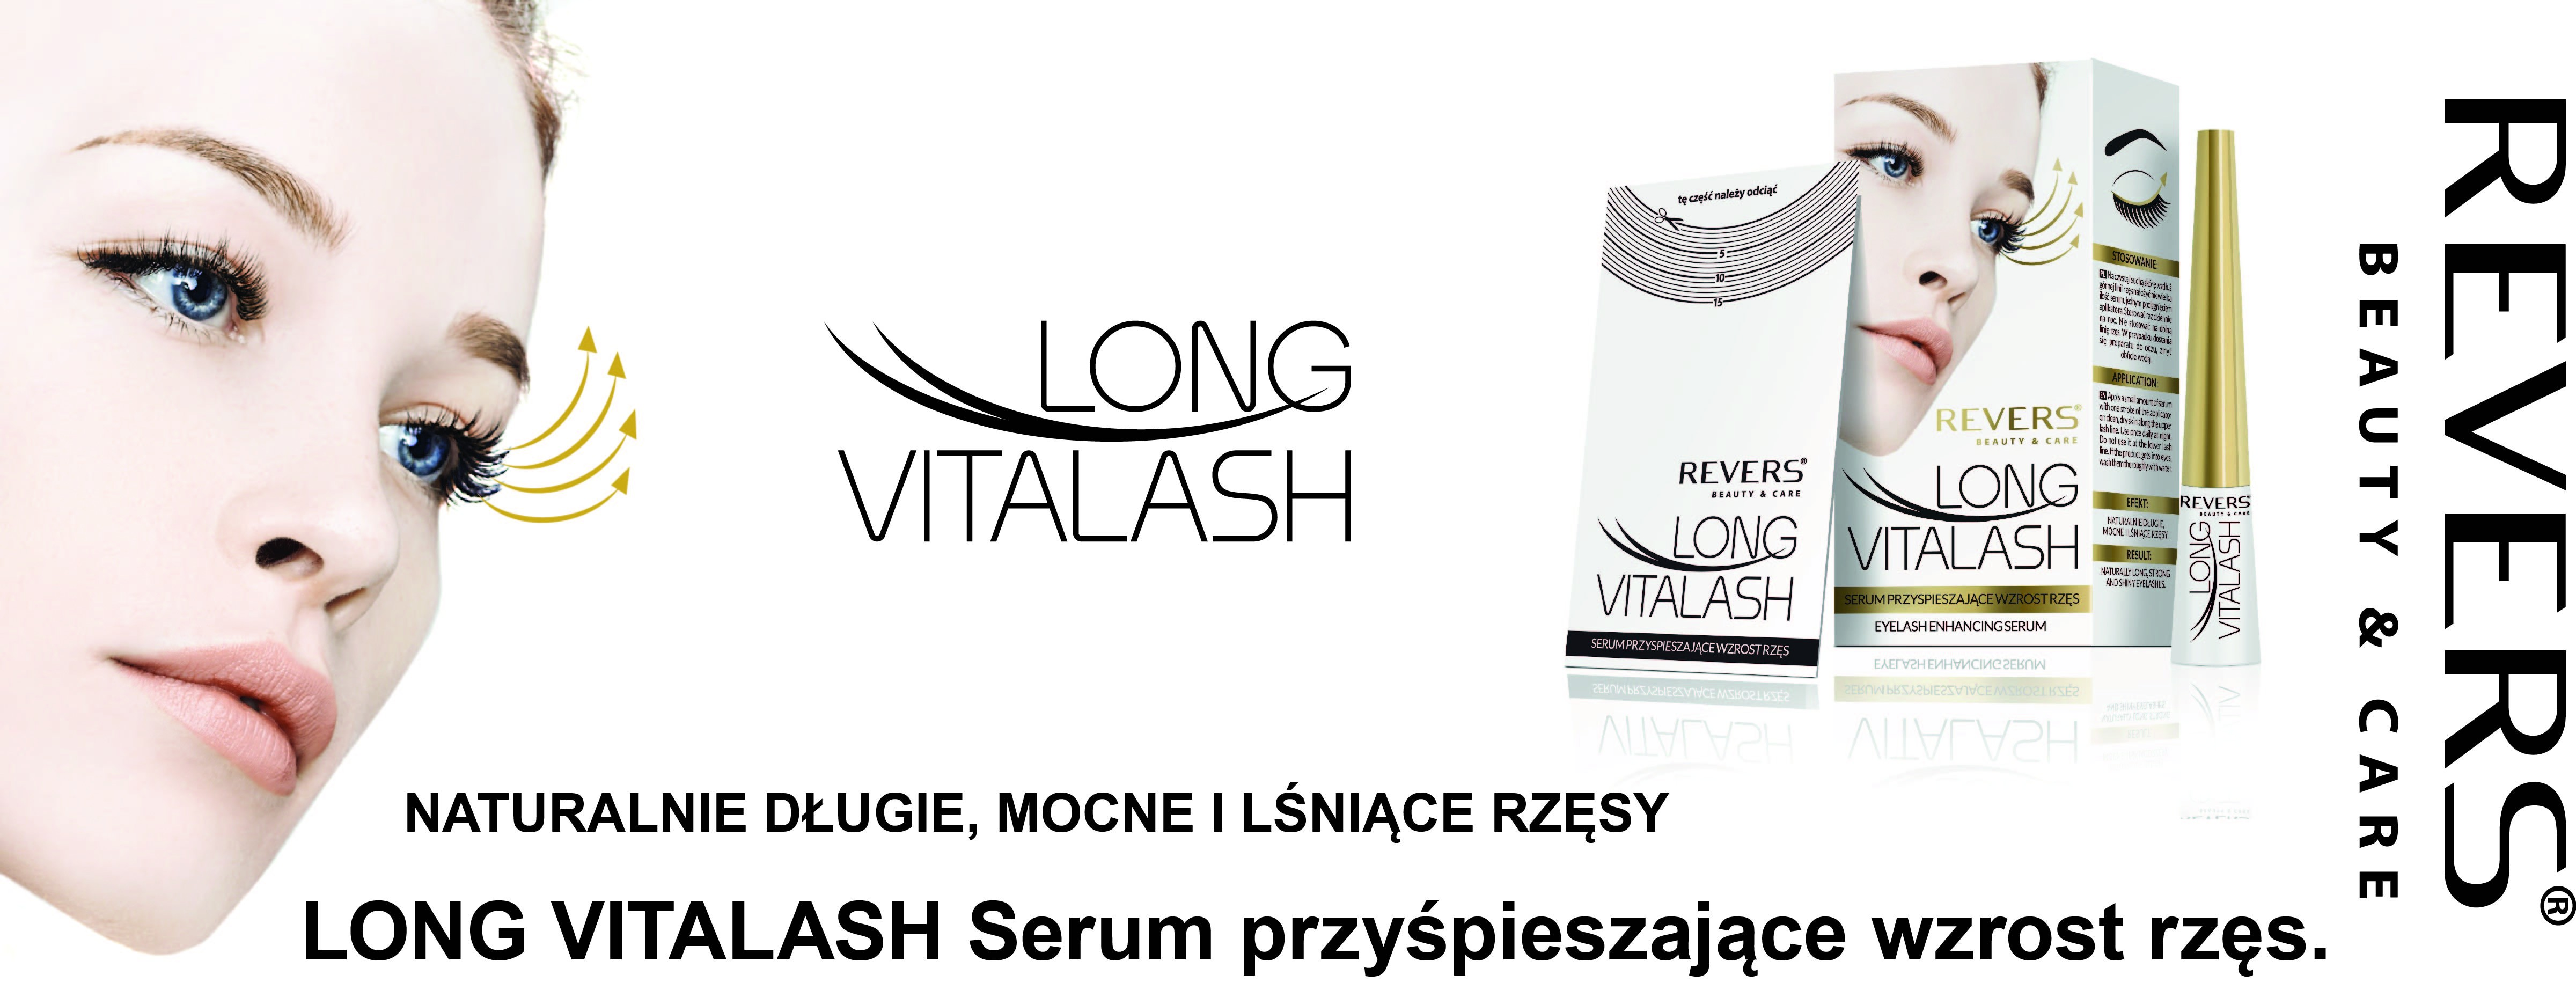 Serum do rzęs